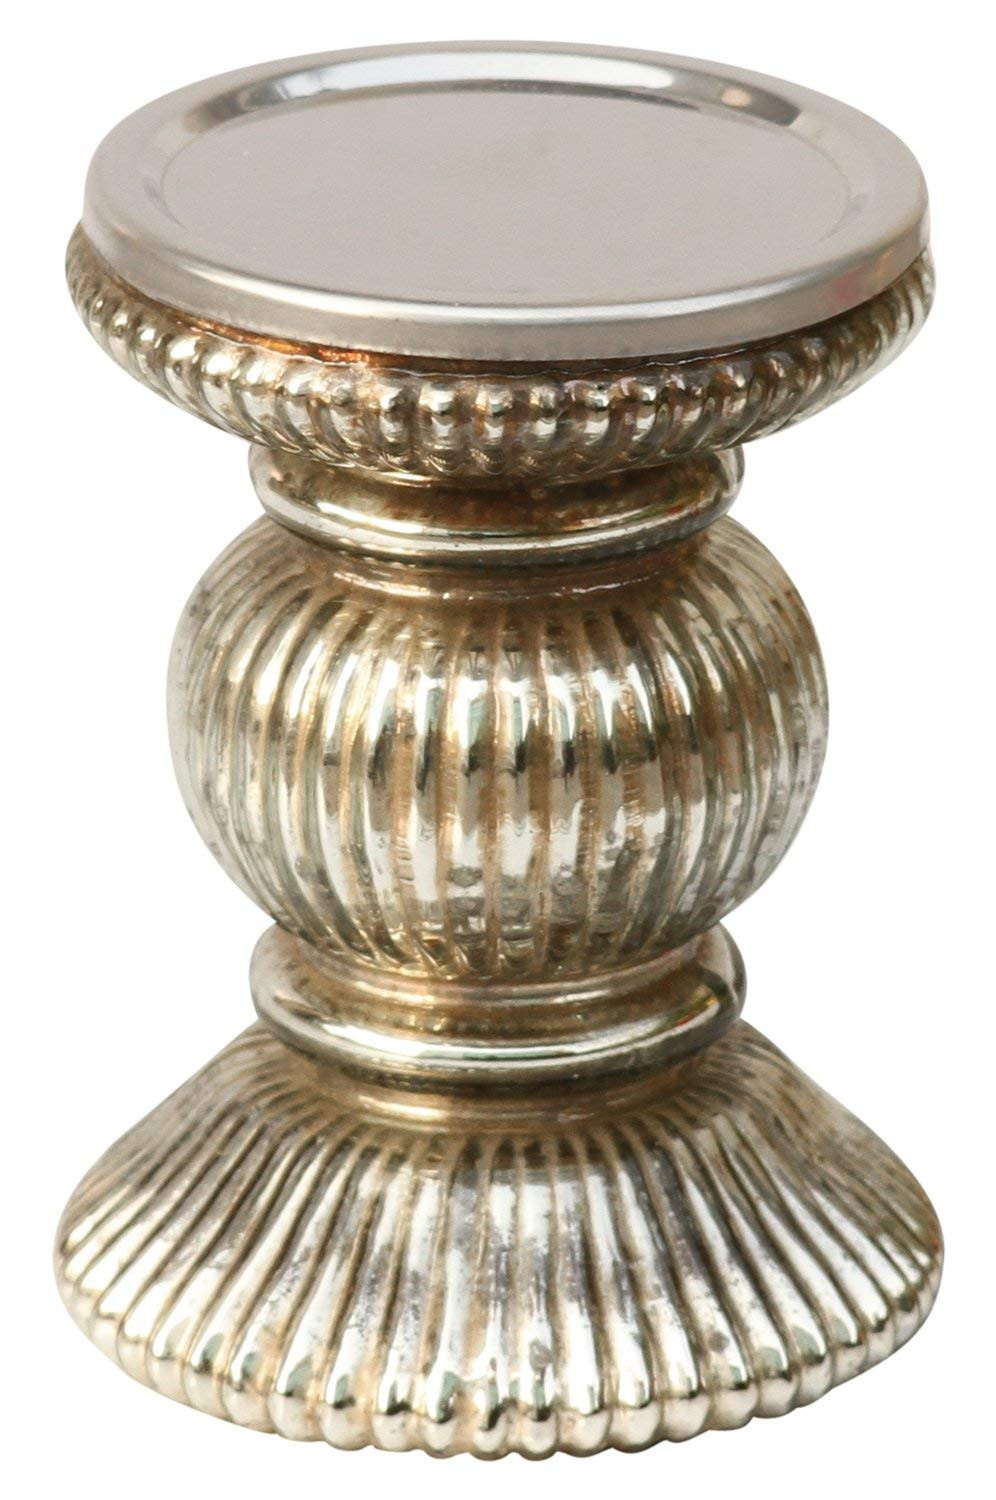 antique mercury glass vases of amazon com deal of the day 5 3 silver candle holder amazing regarding amazon com deal of the day 5 3 silver candle holder amazing decorations souvnear handmade ribbed glass pillar candle holder candle stand home